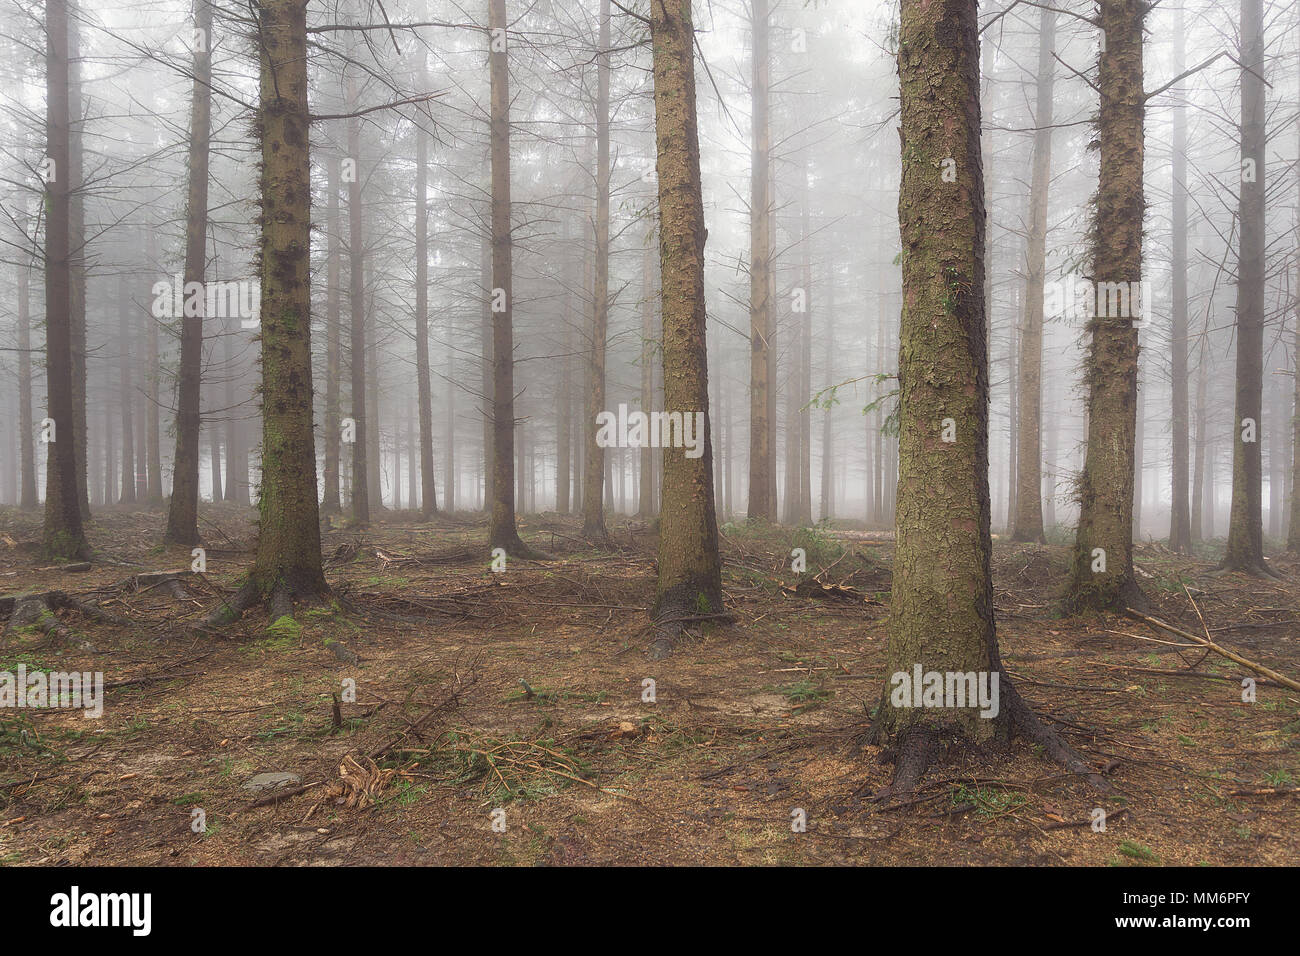 conifer forest with bare tree trunks in winter - Stock Image